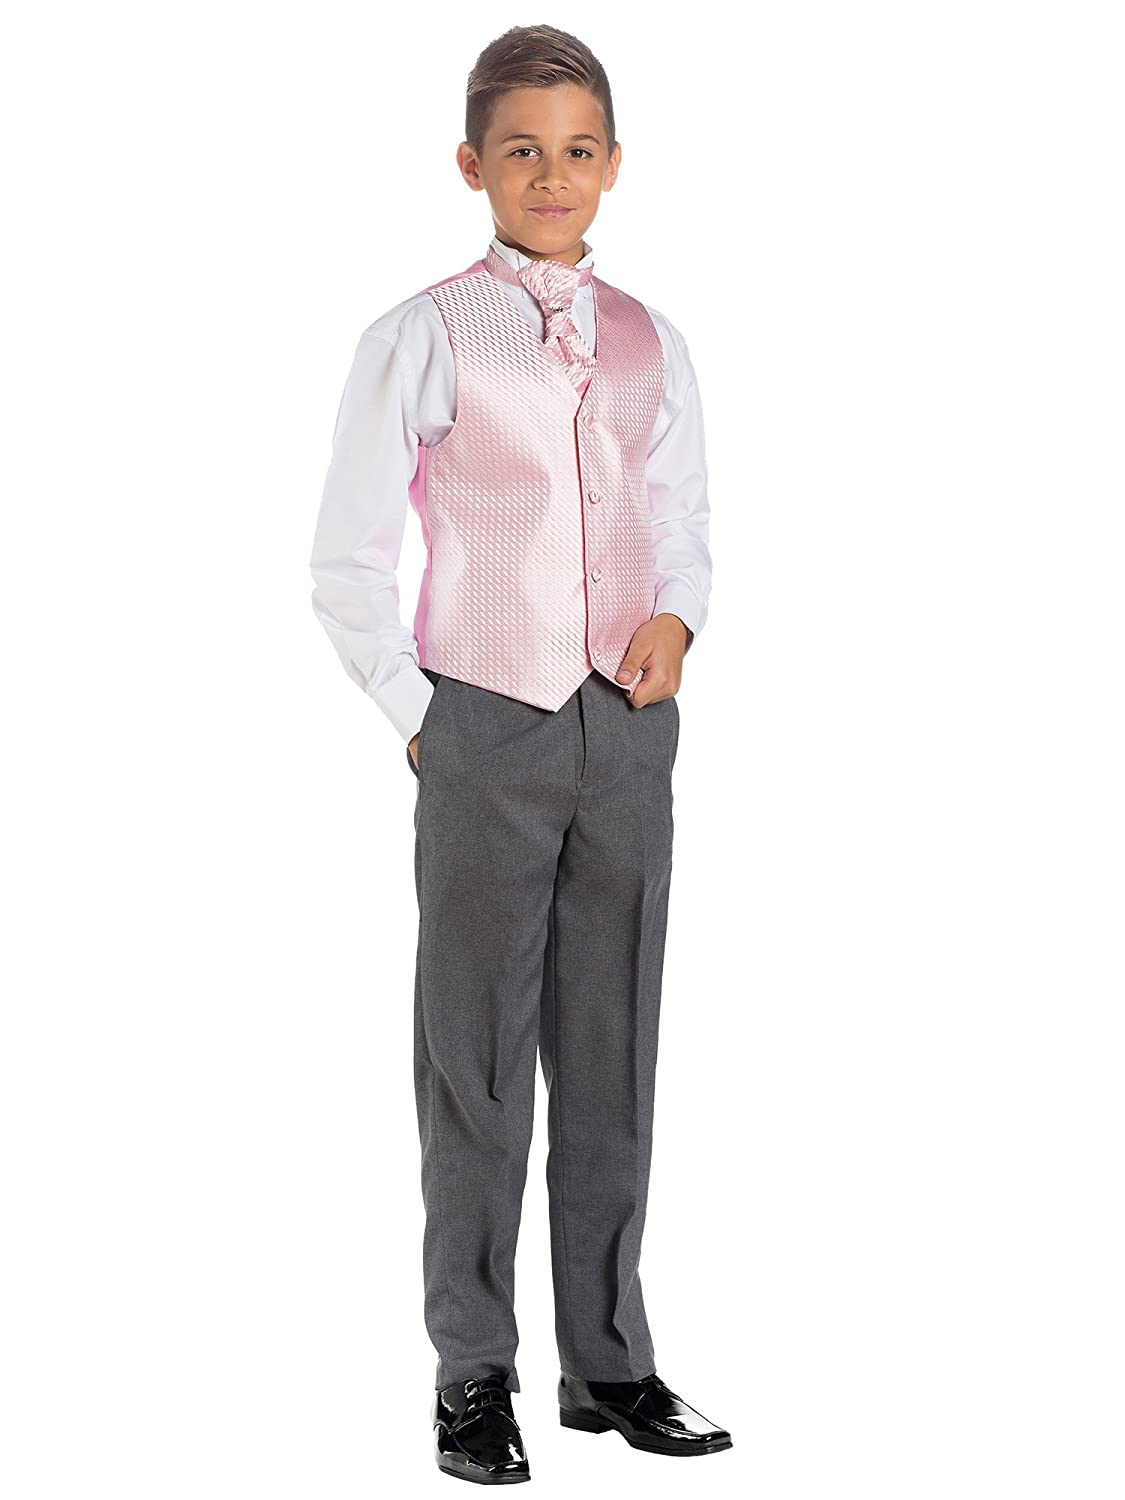 Paisley of London, Boys Pink & Grey Suit, Page Boy Suits, Waistcoat Suit, 3 months - 14 years